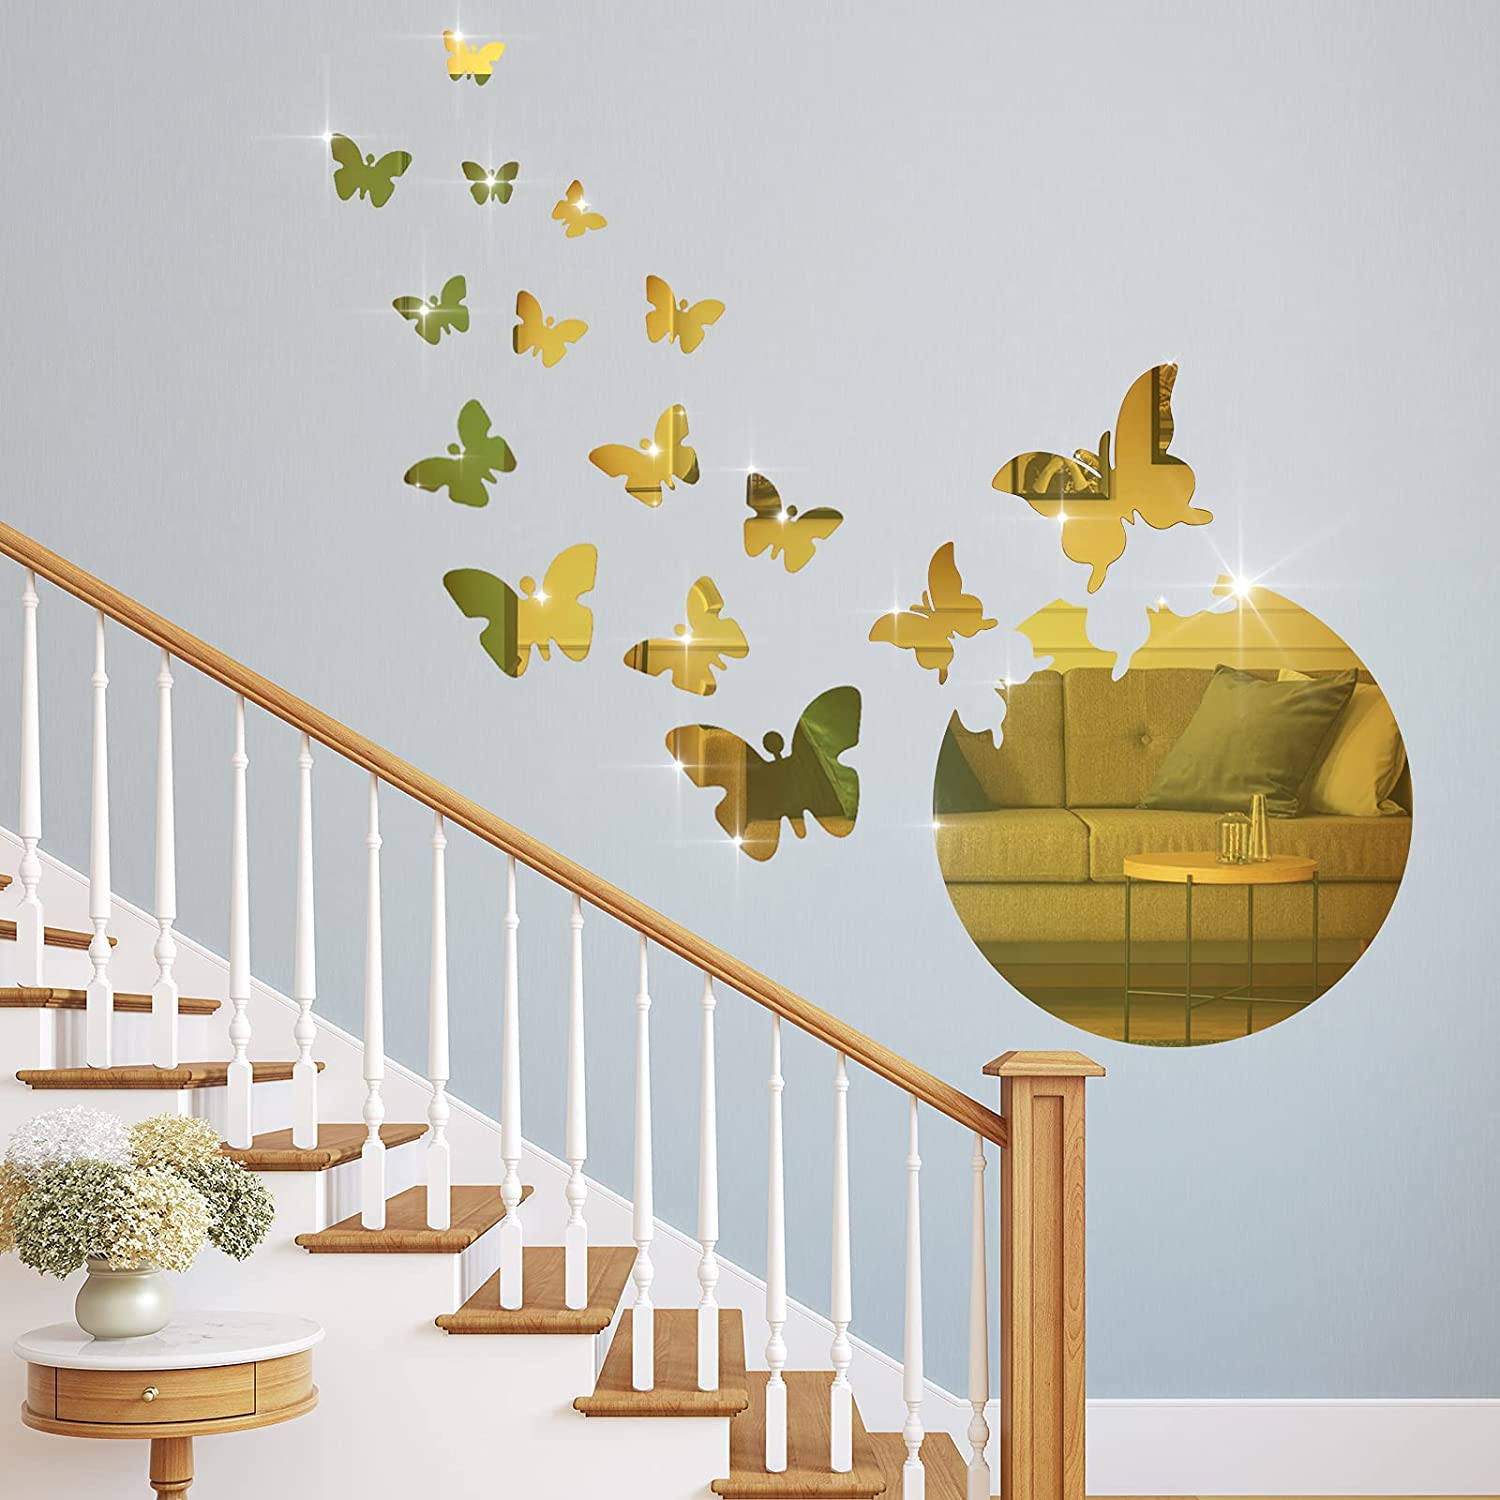 17 Pieces 3D Acrylic Mirror Wall Decor Stickers Removable Butterfly Mirror Wall Stickers DIY Mirror Butterfly Mural Stickers Butterfly Wall Stickers Decals for Home Living Room Bedroom (Gold)